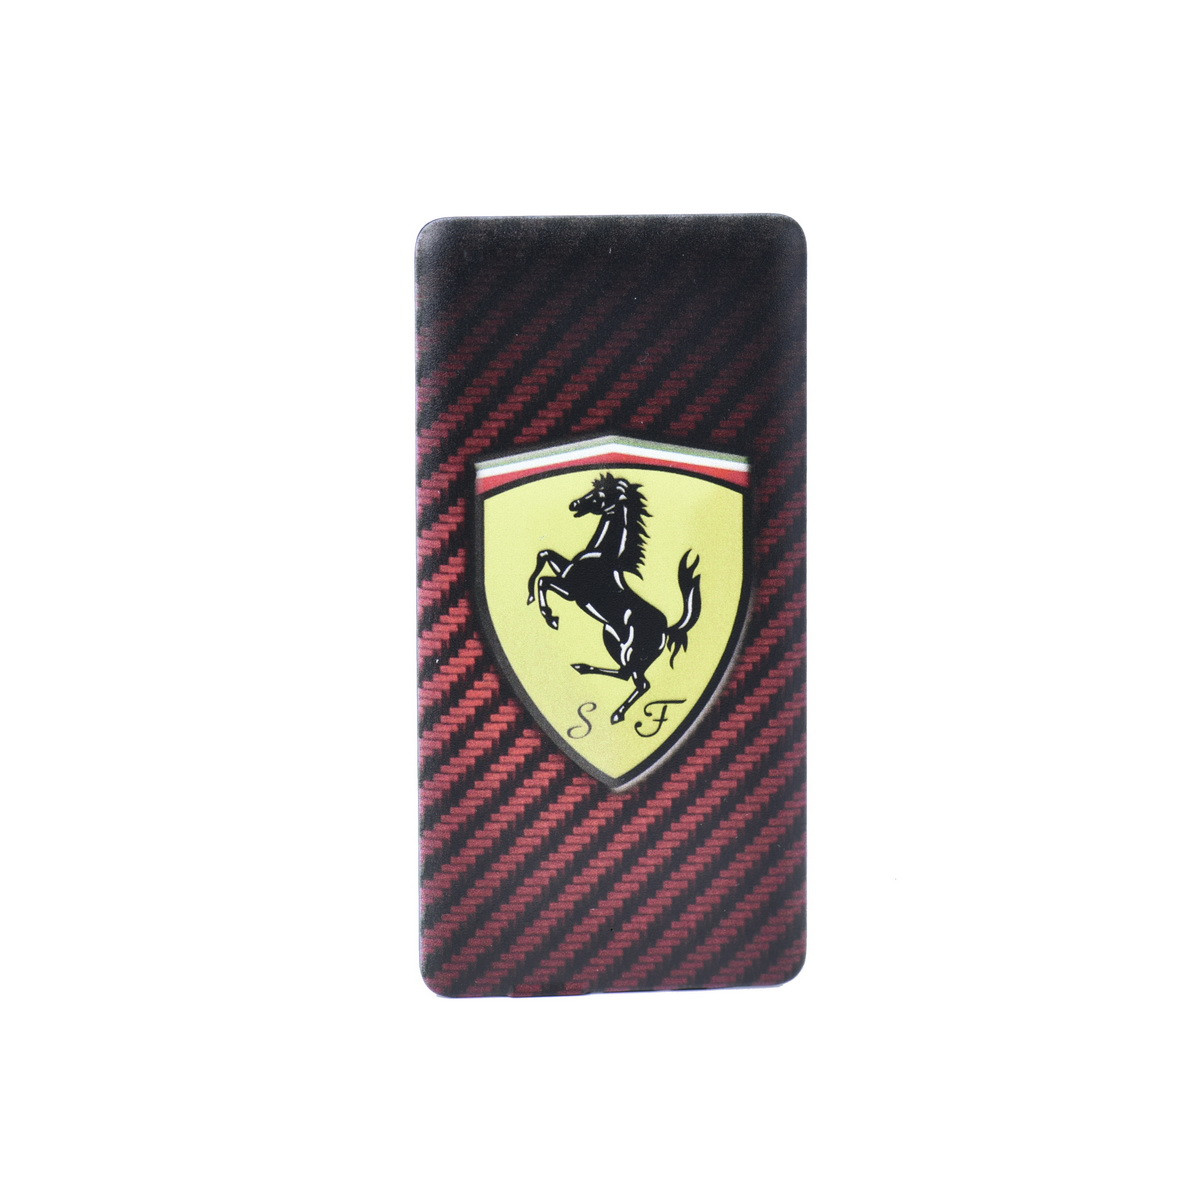 Power bank V84 Ferrari S F 4800mAh 1XUSB carbon Black/Red